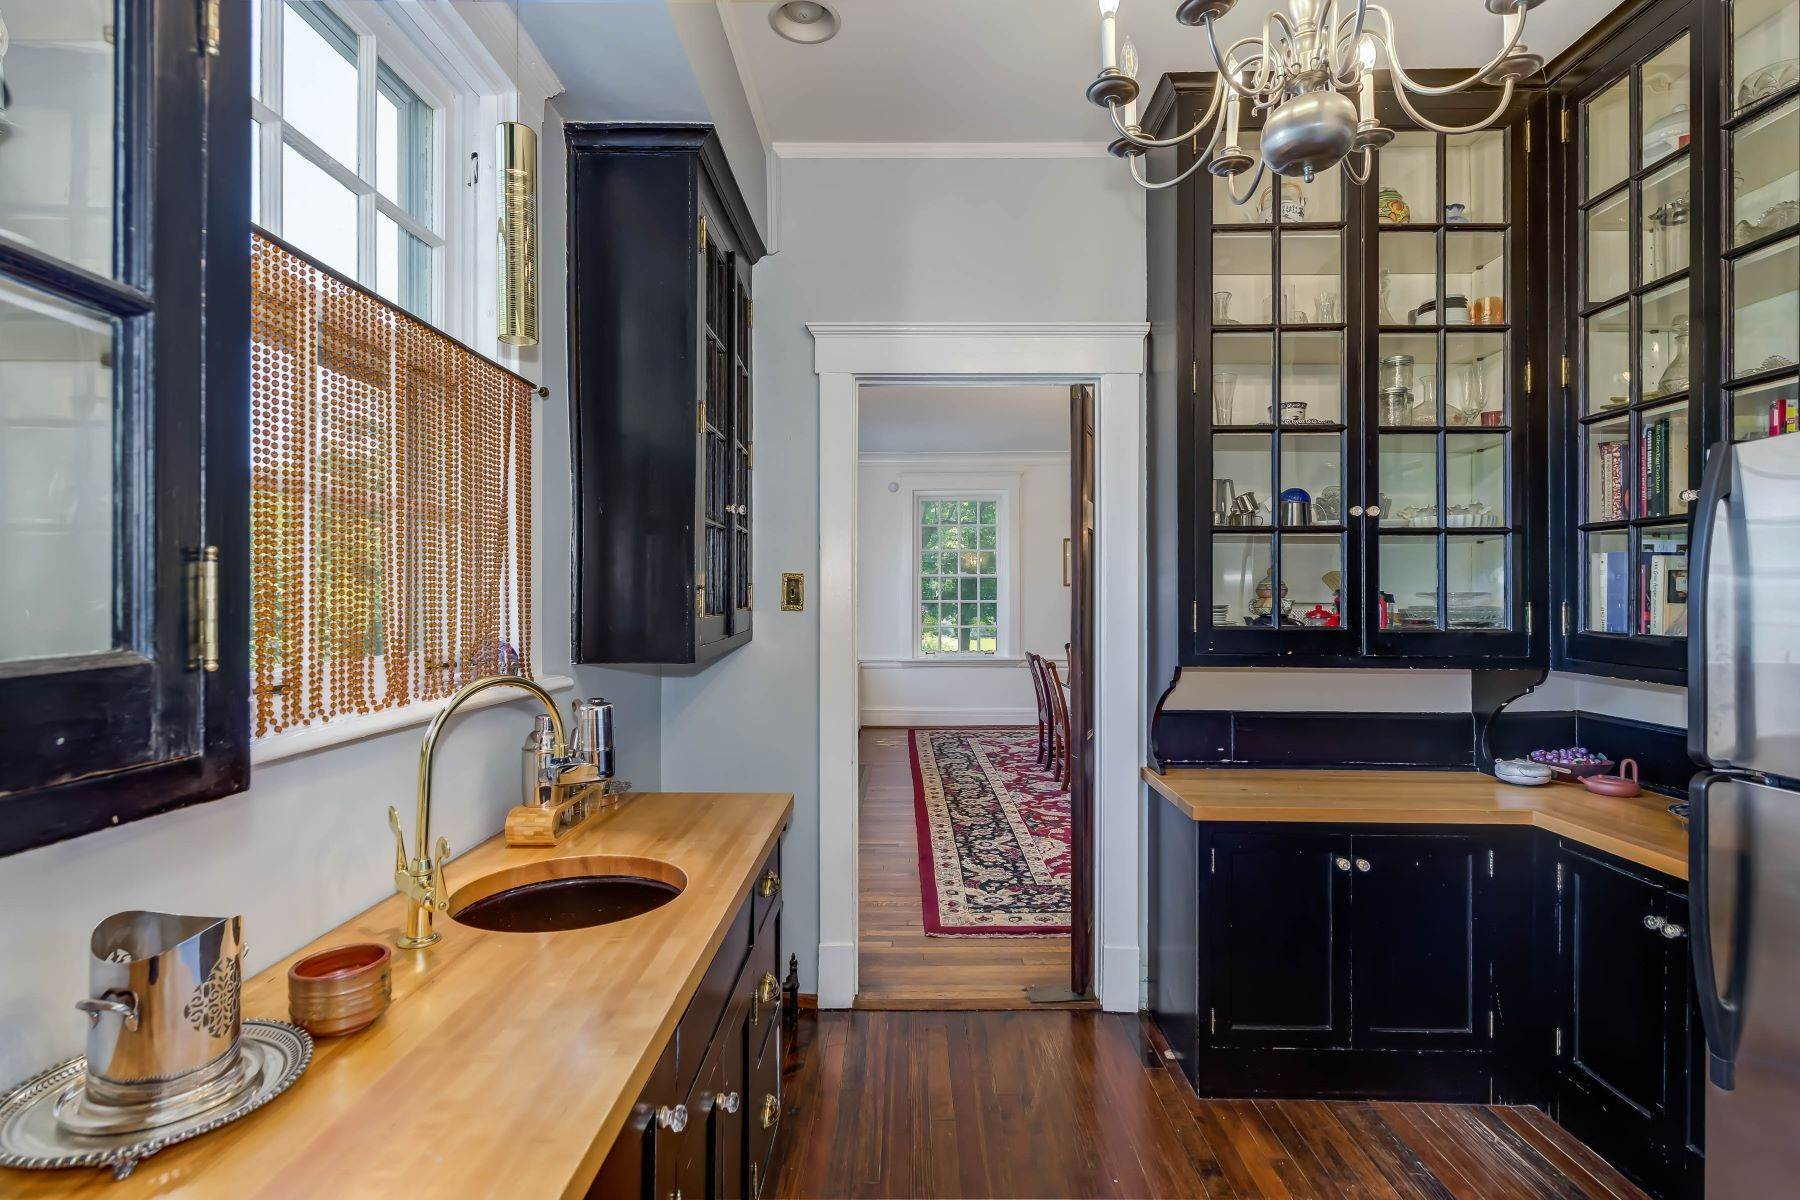 13. Single Family Homes for Sale at Gracious Historic Kirkwood Home 333 Dickson Street Kirkwood, Missouri 63122 United States